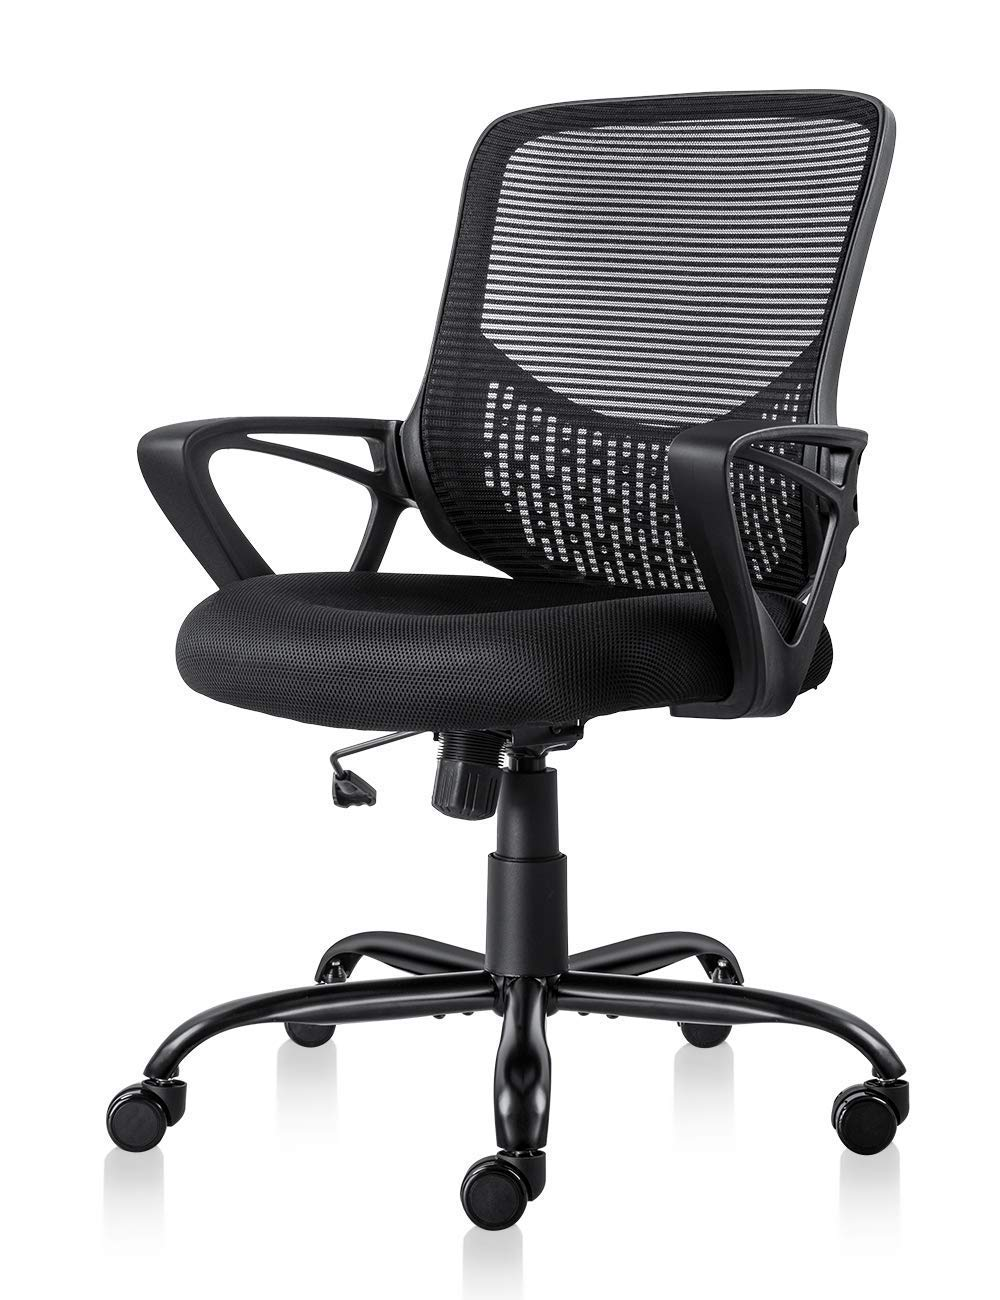 Ergonomic Office Chair Lumbar Support Mesh Chair Computer Desk Task Chair with Armrests by Smugdesk